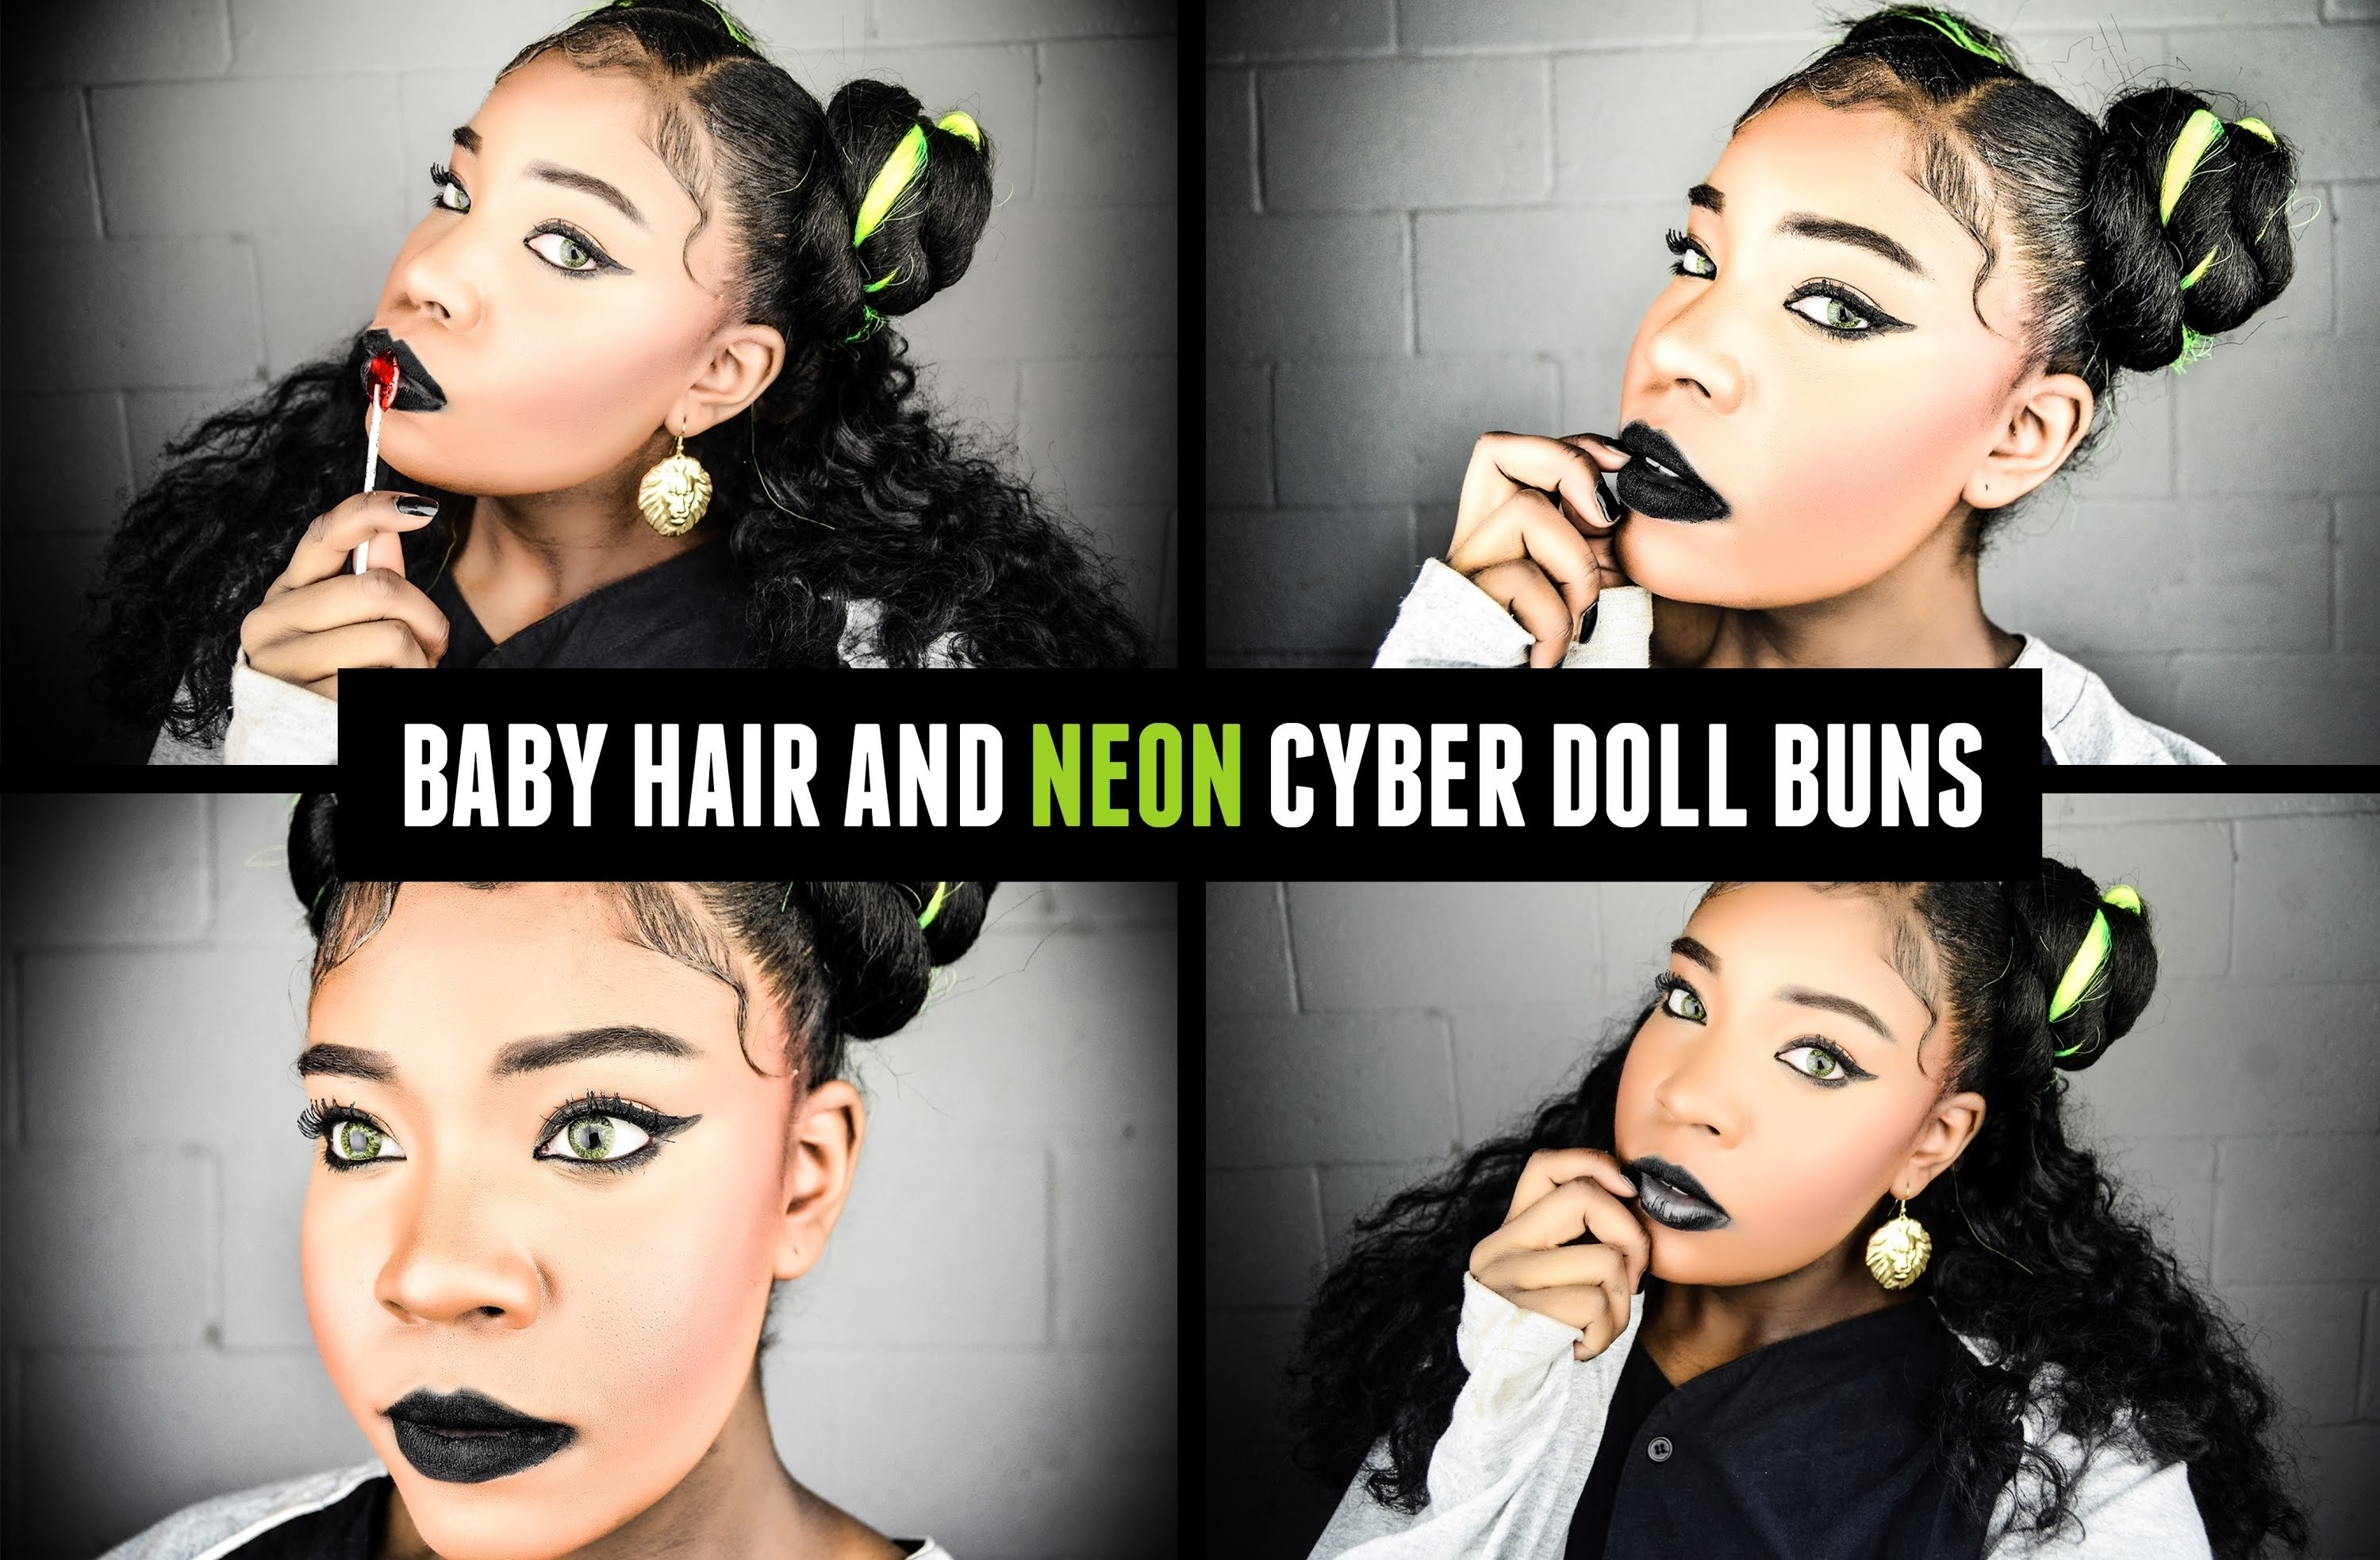 10 Most Recommended Black Girl Halloween Costume Ideas 13 ingenious halloween costume ideas for black women bglh marketplace 1 2020